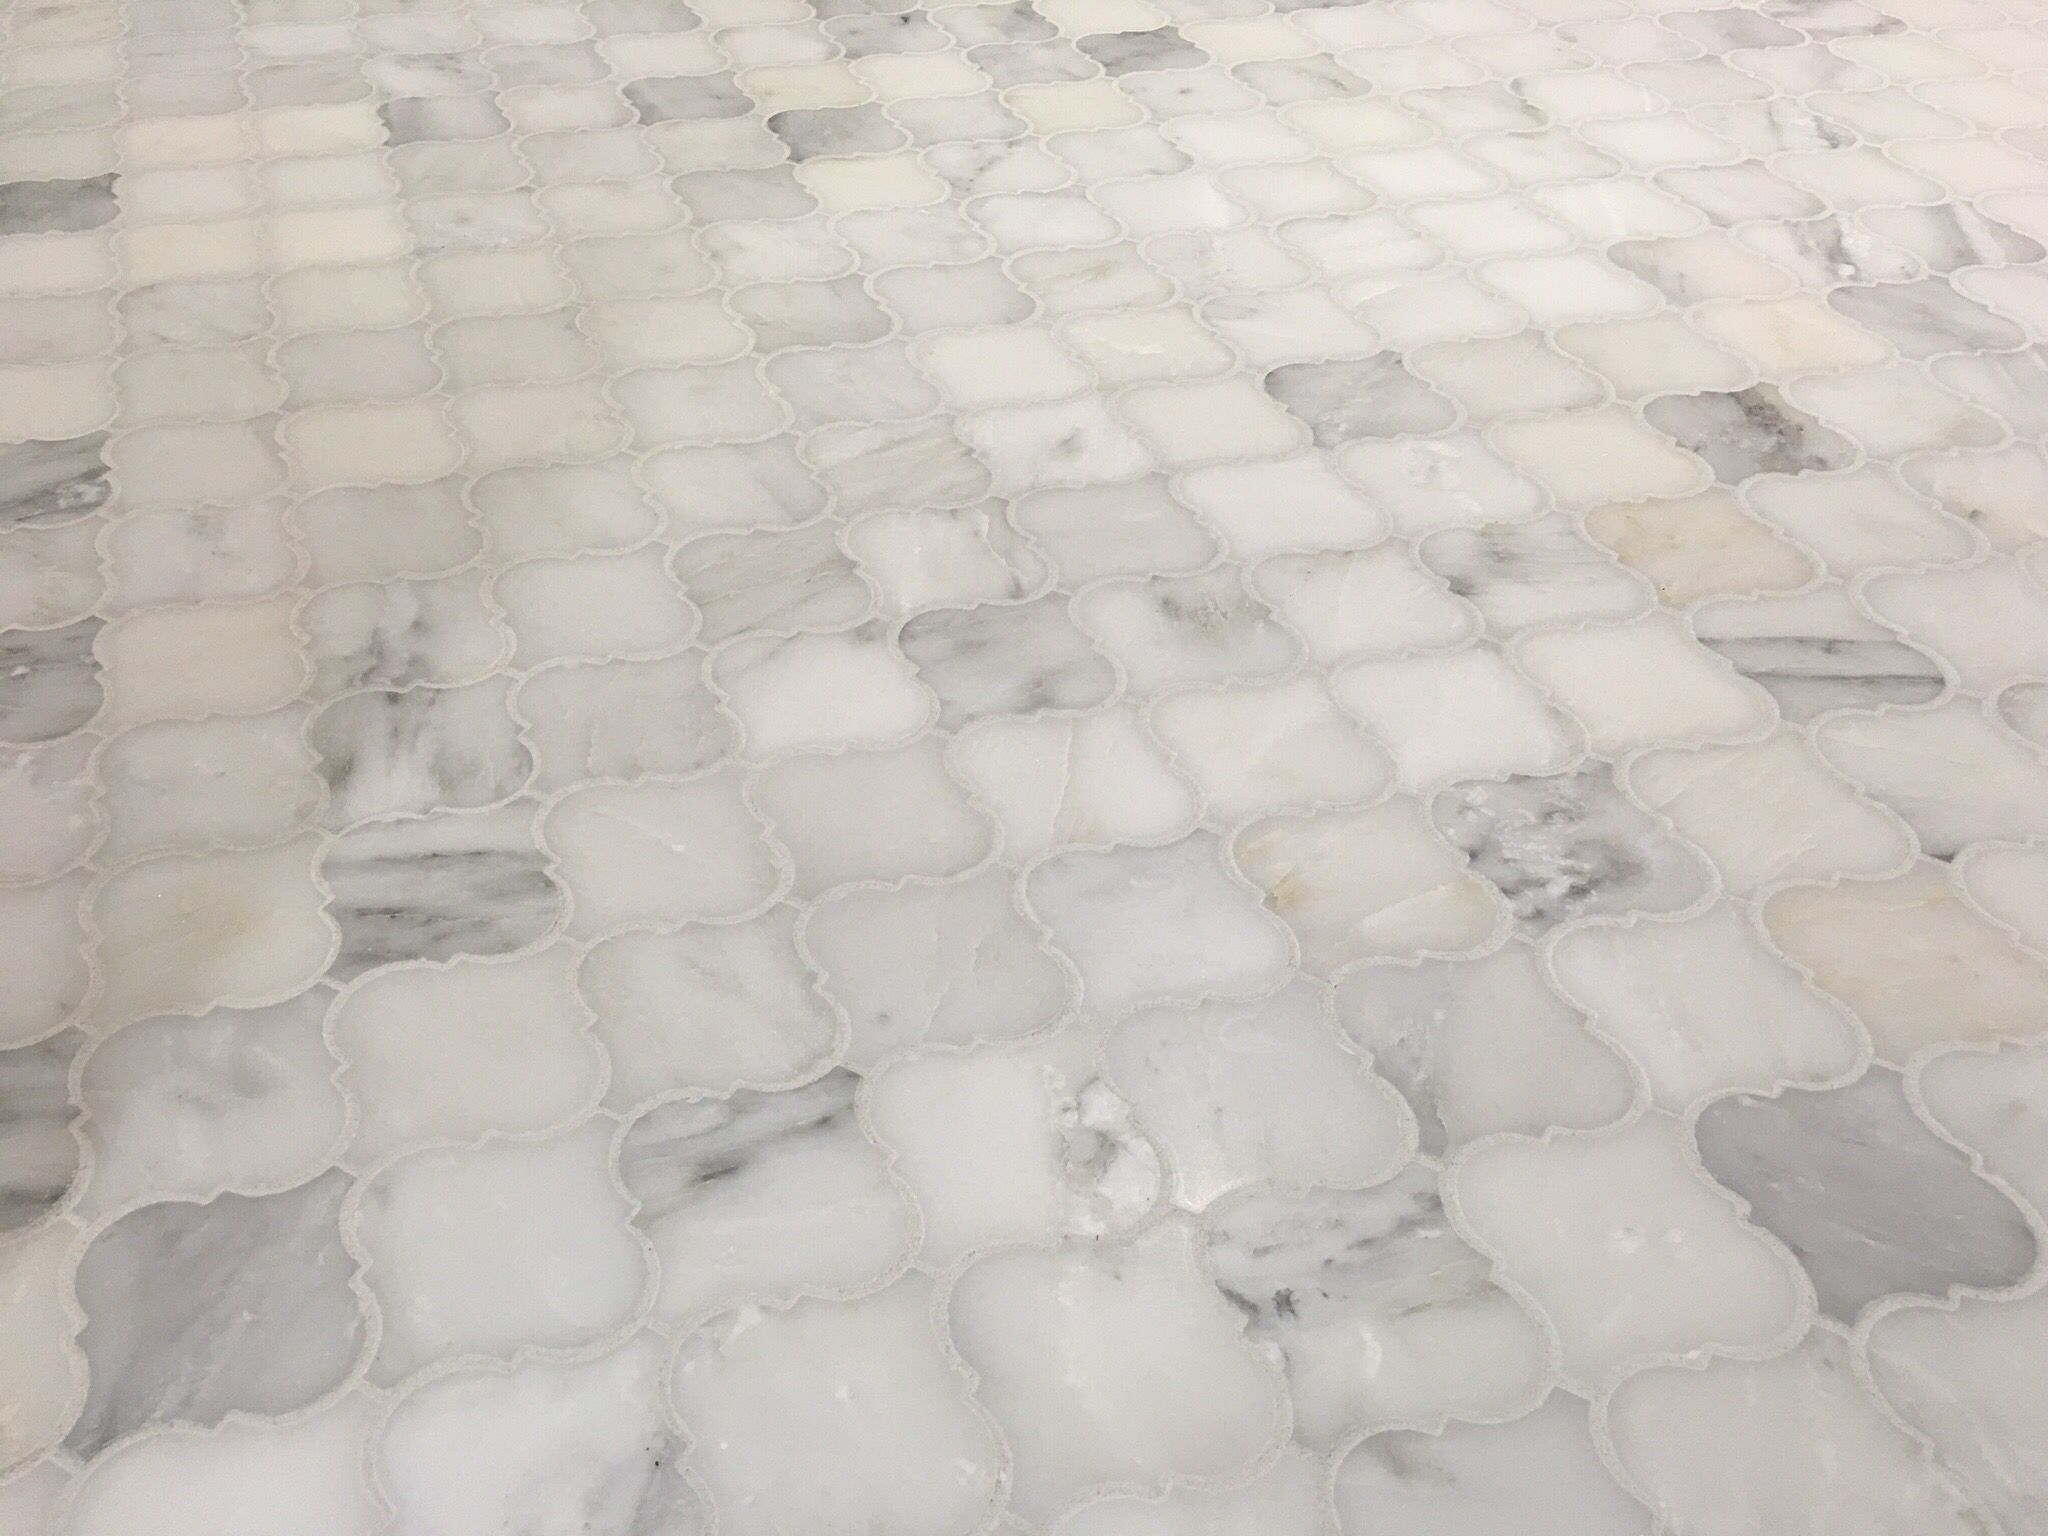 Carrera Marble Arabesque Mosaic Tile Bathroom Floor Marble Tile